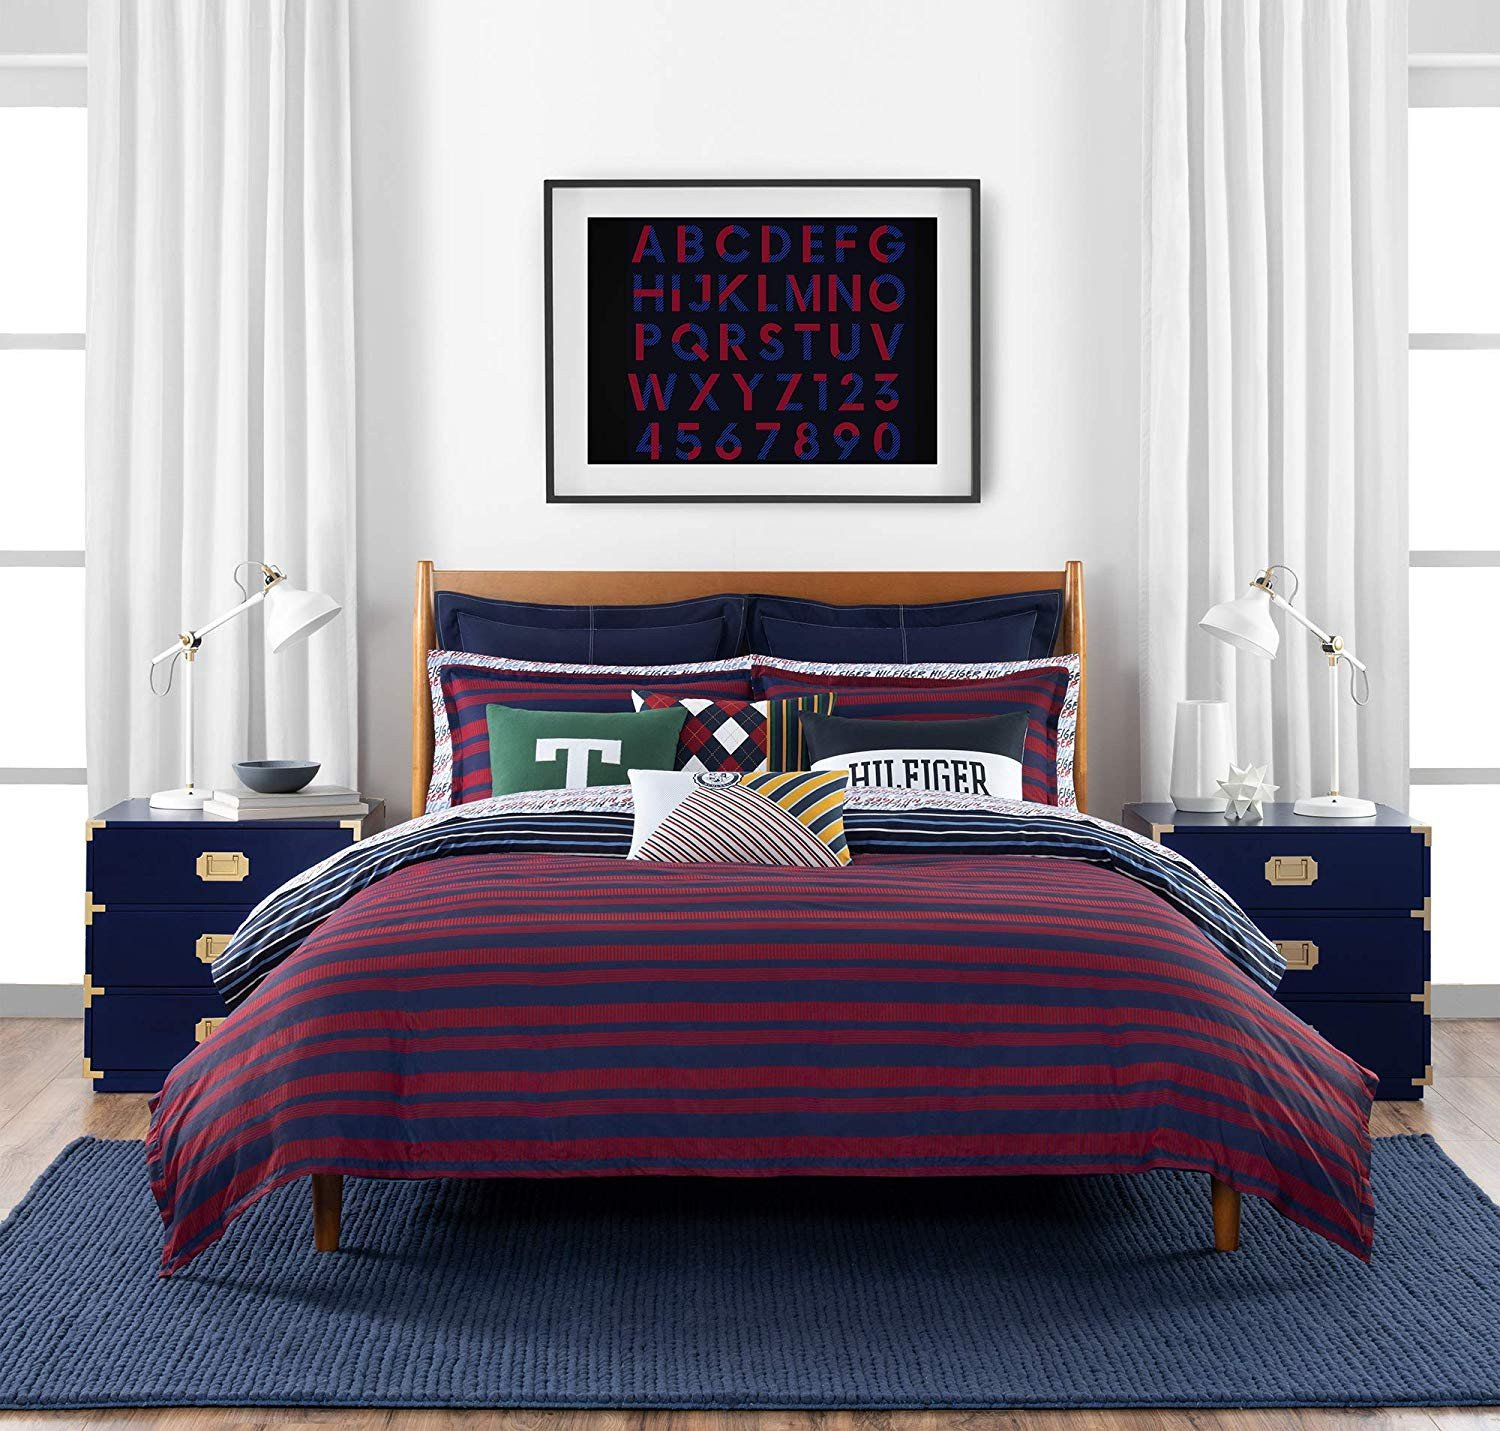 Bedroom In A Bag with Curtains Lovely tommy Hilfiger Heritage Stripe Bedding Collection forter Set Full Queen Navy Red